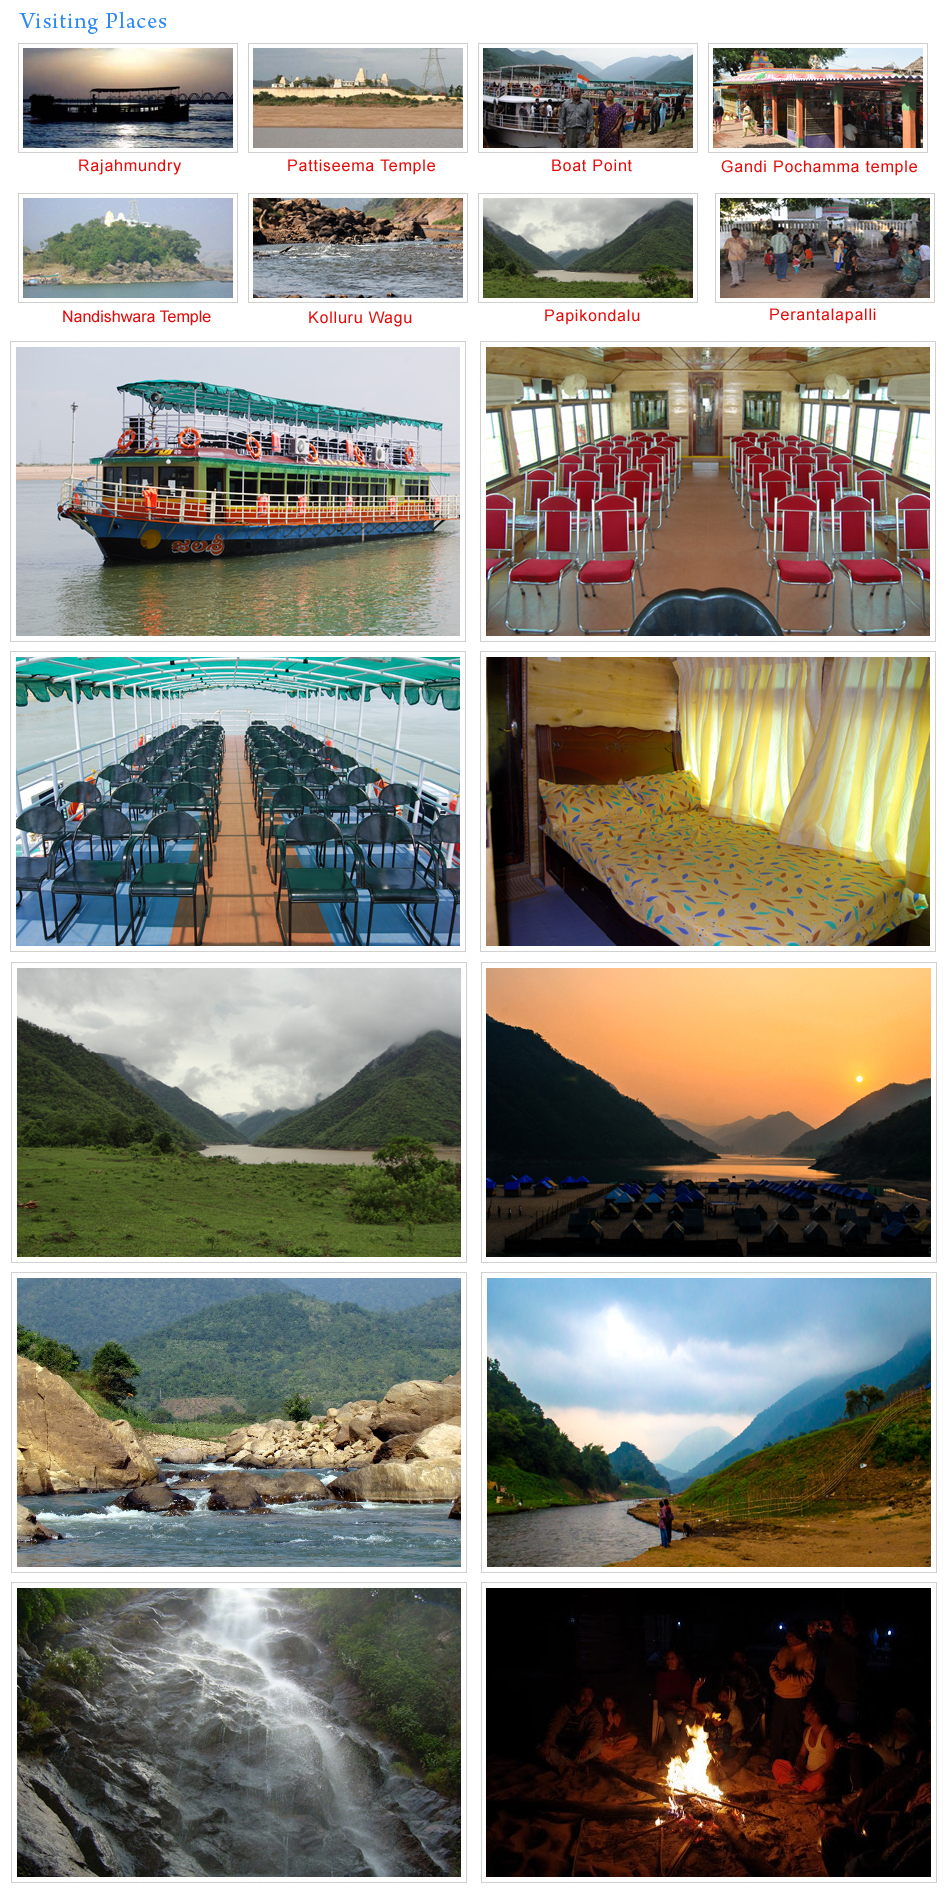 Papikondalu 1 Day Package